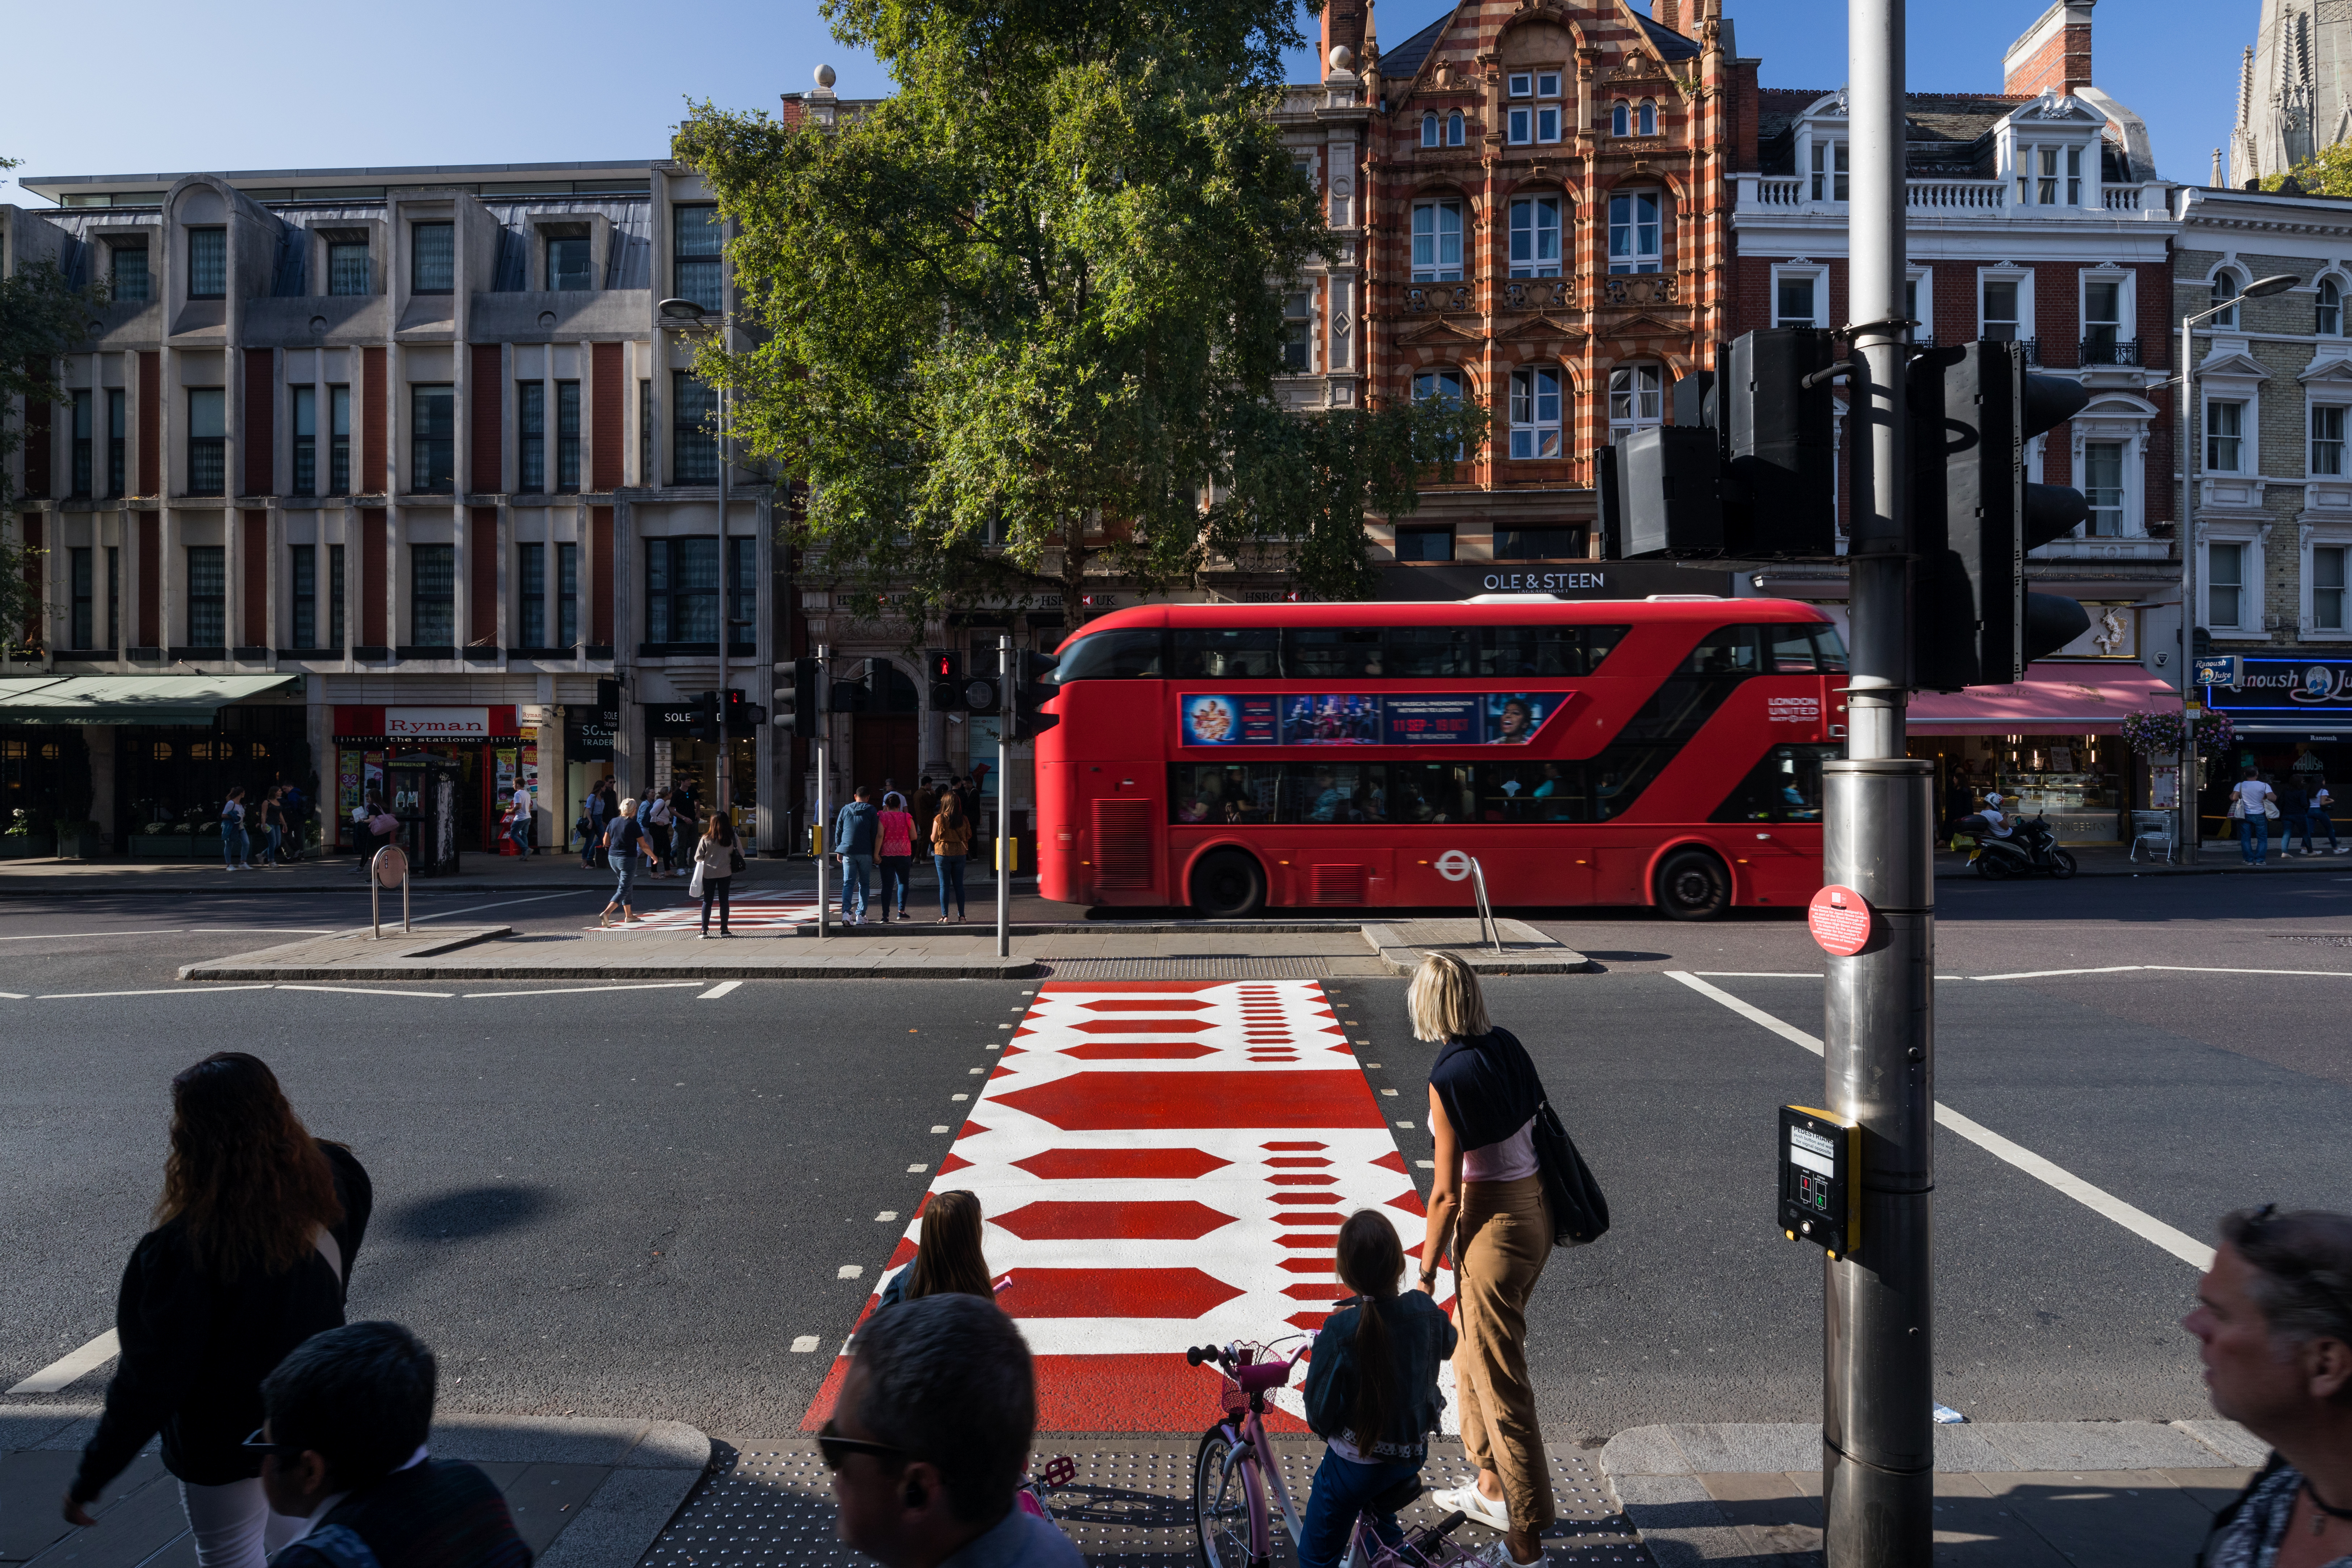 The Creative Crossing designed by Hara Kenya for Japan House London on Kensington High Street 3